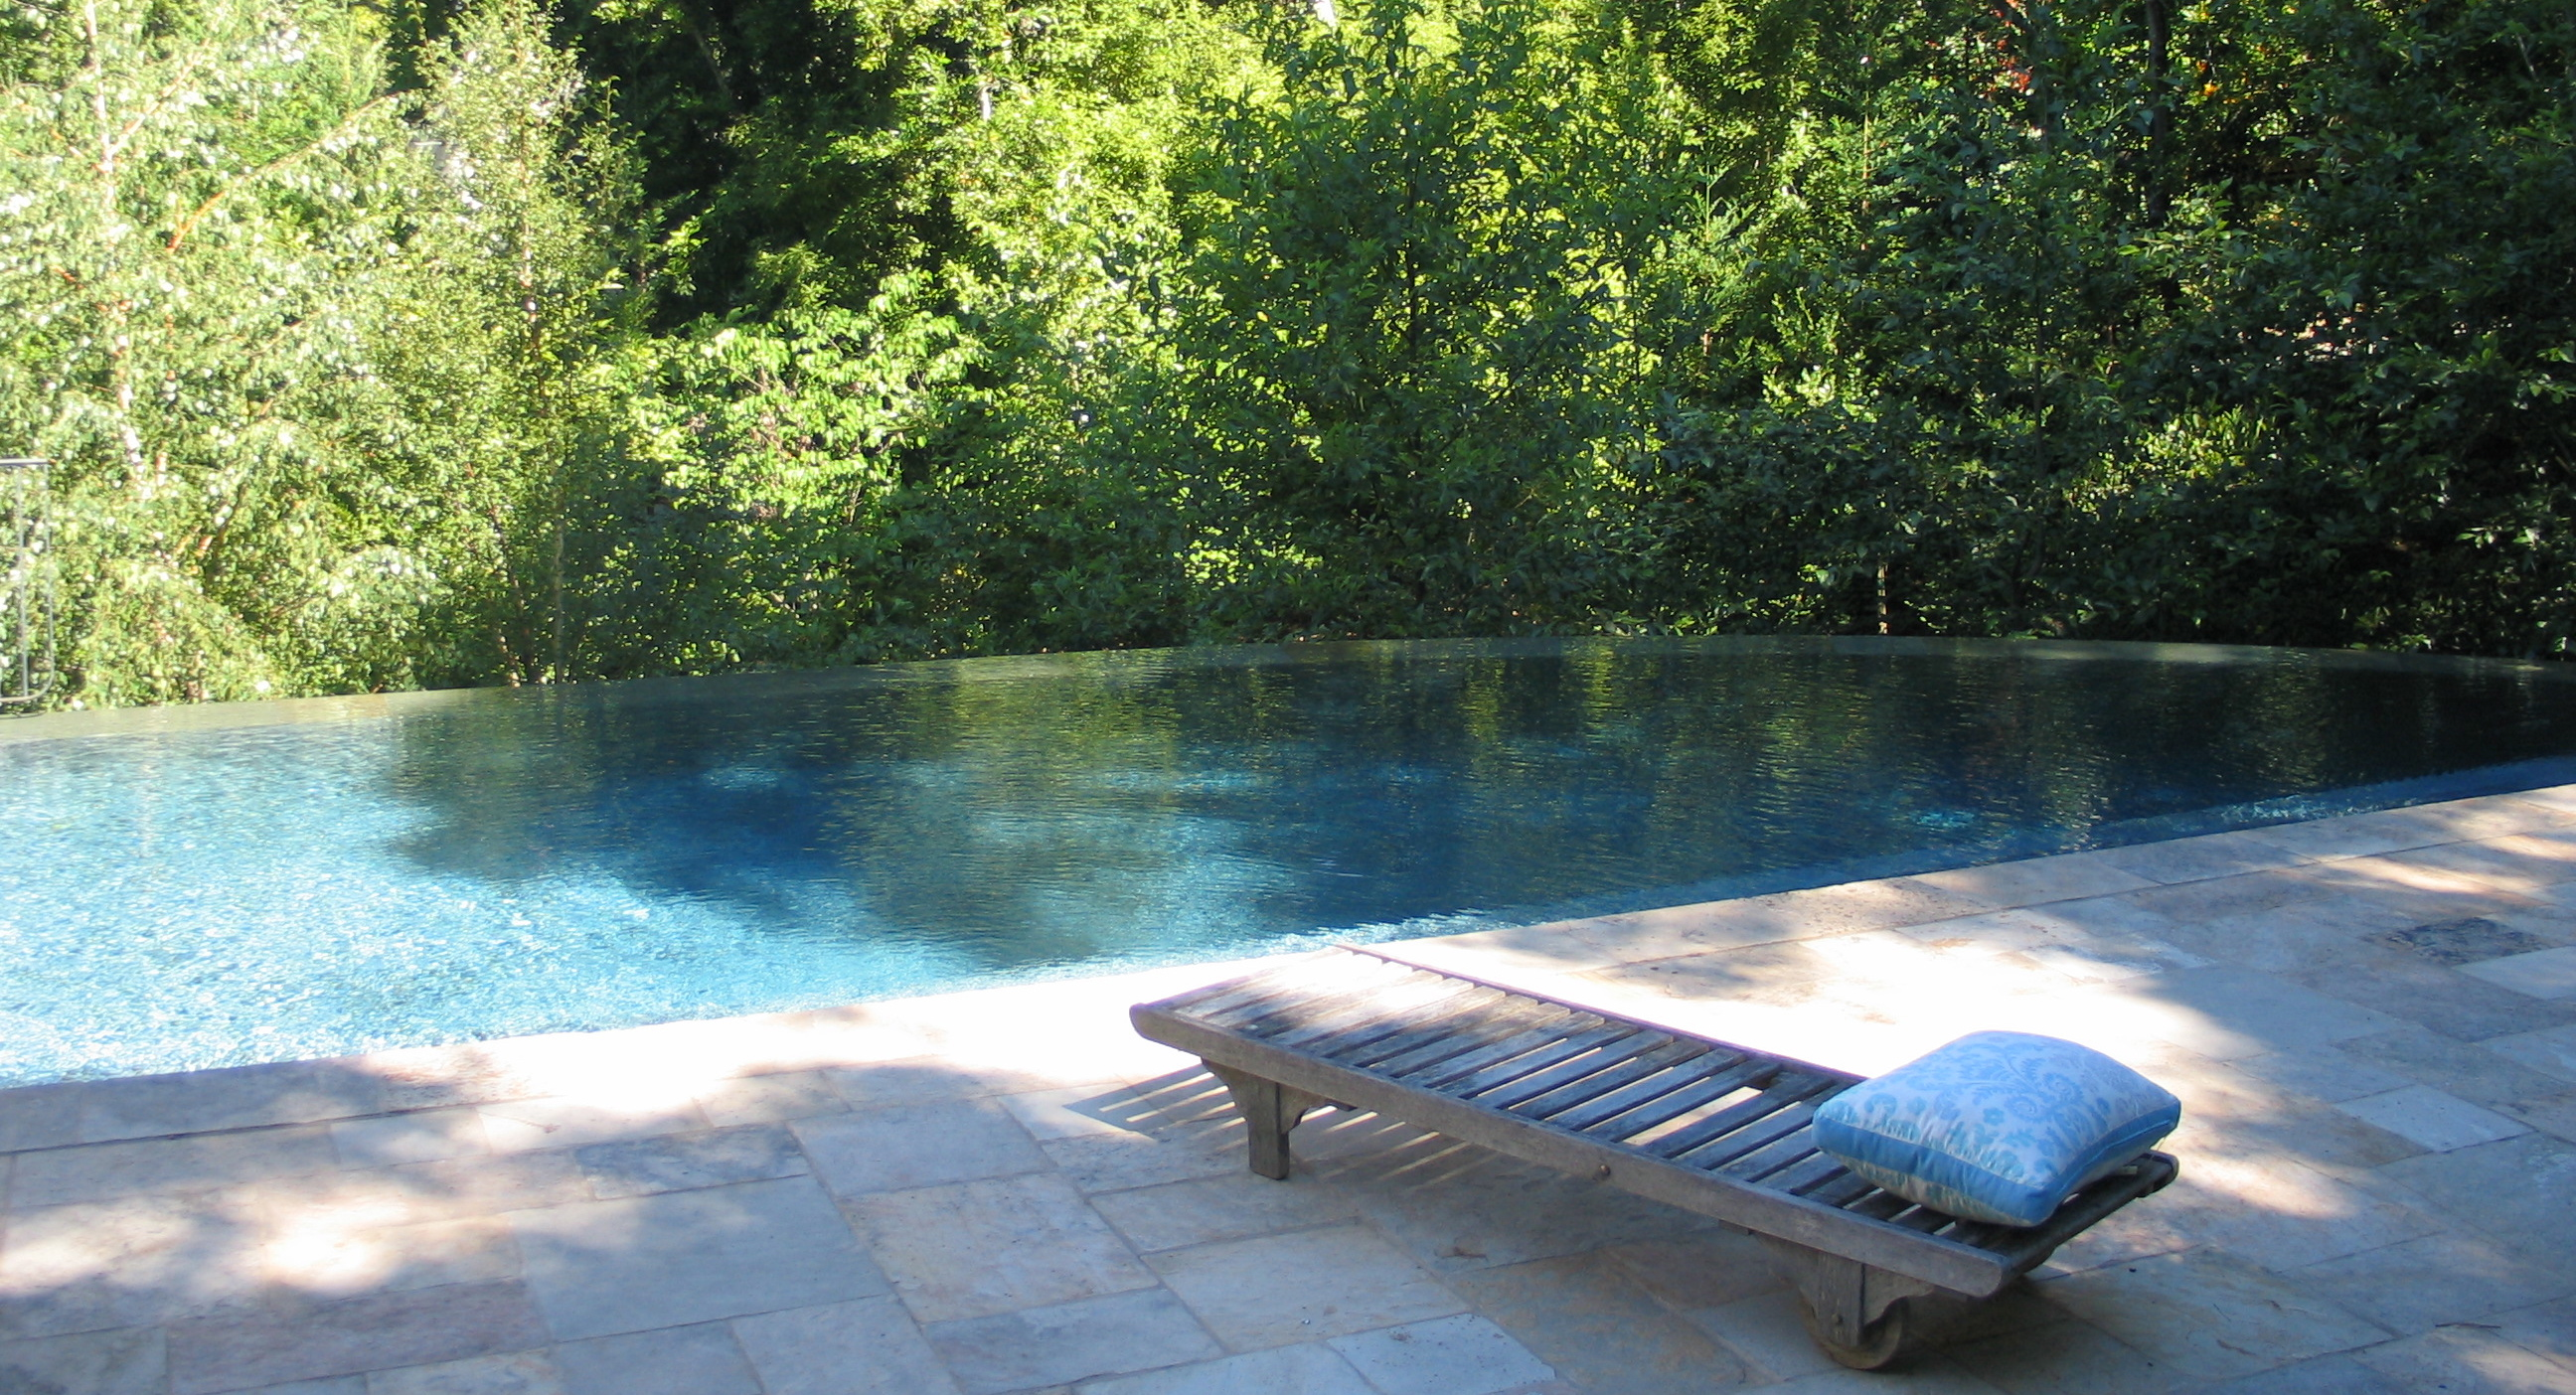 Chaise lounge and pool